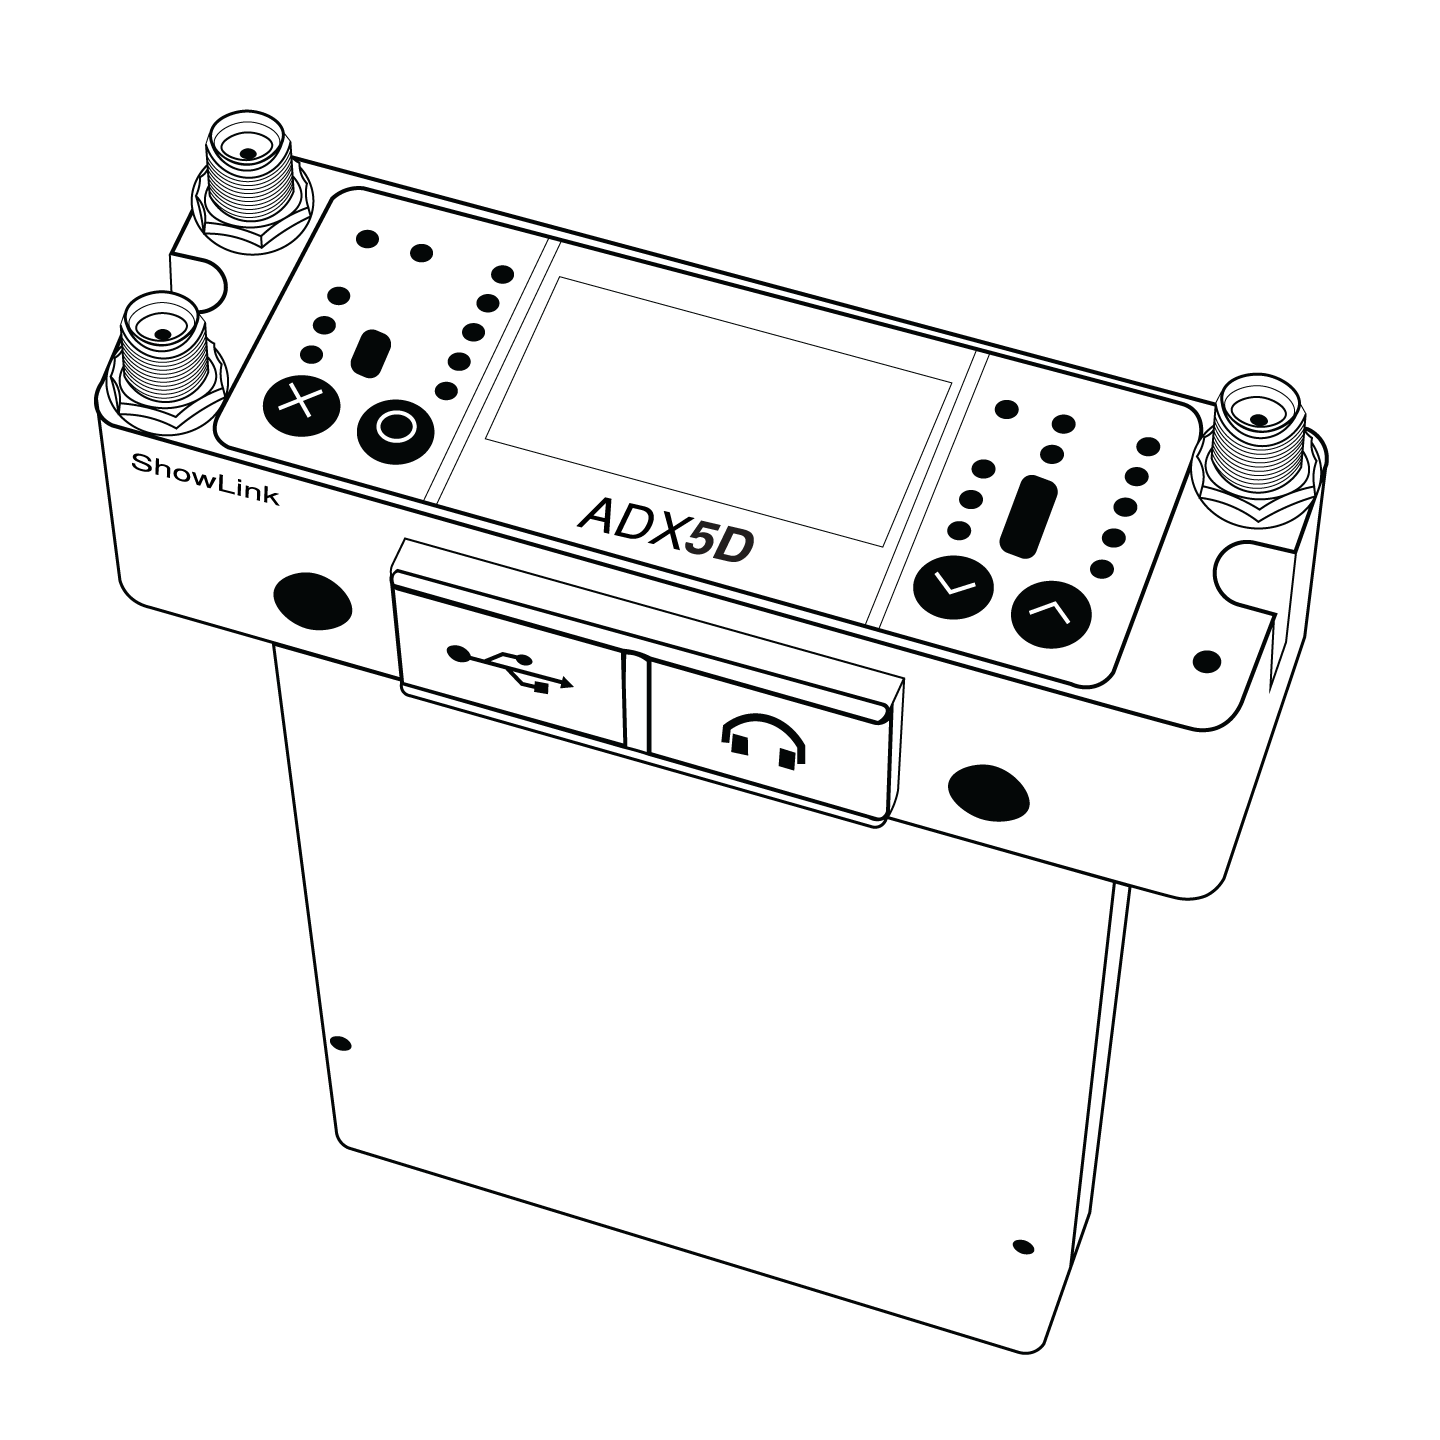 The ADX5D receiver